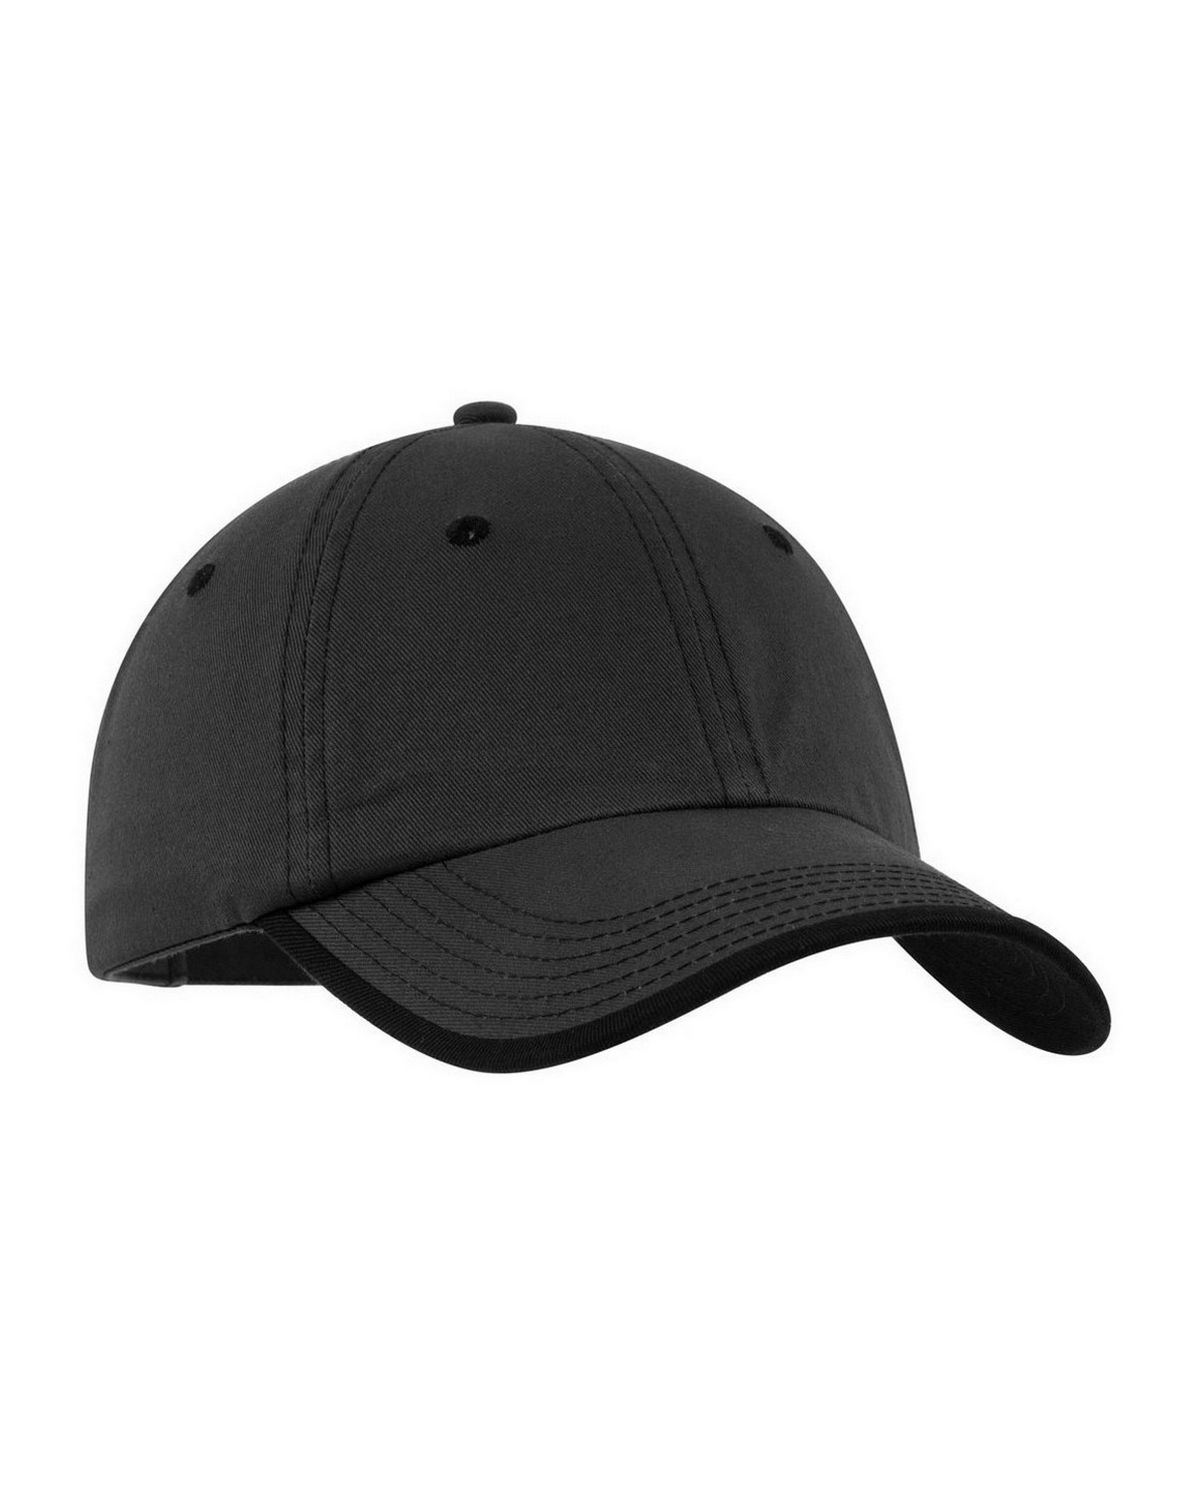 Port Authority C835 Vintage Washed Contrast Stitch Cap - Charcoal/Black - One Size from Port Authority